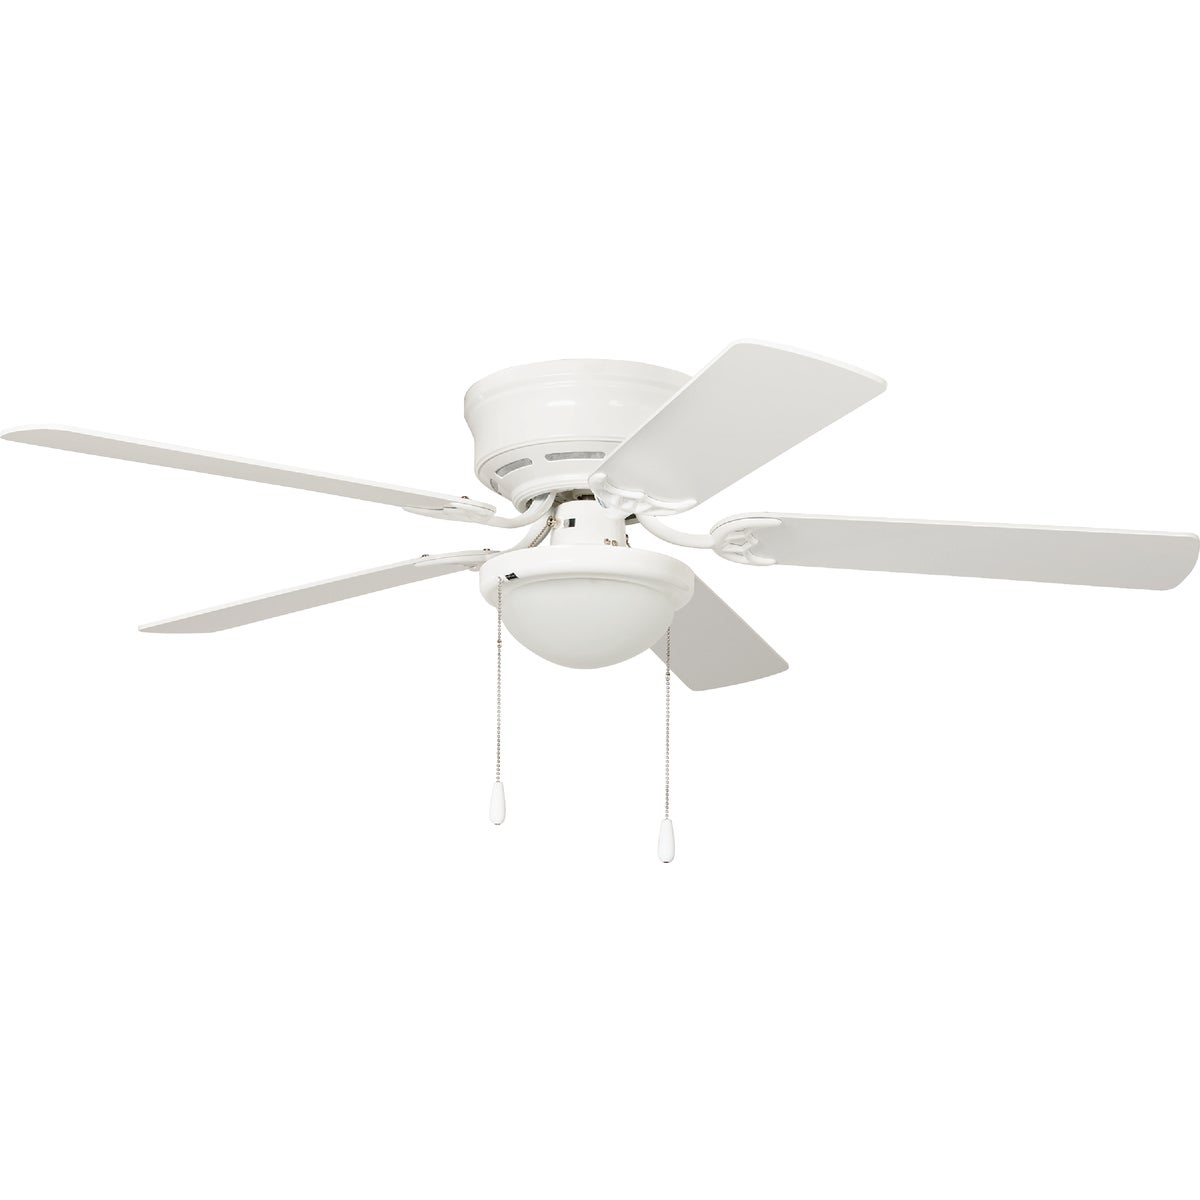 "52"" WHITE CEILING FAN - 508233 by Do it Best"